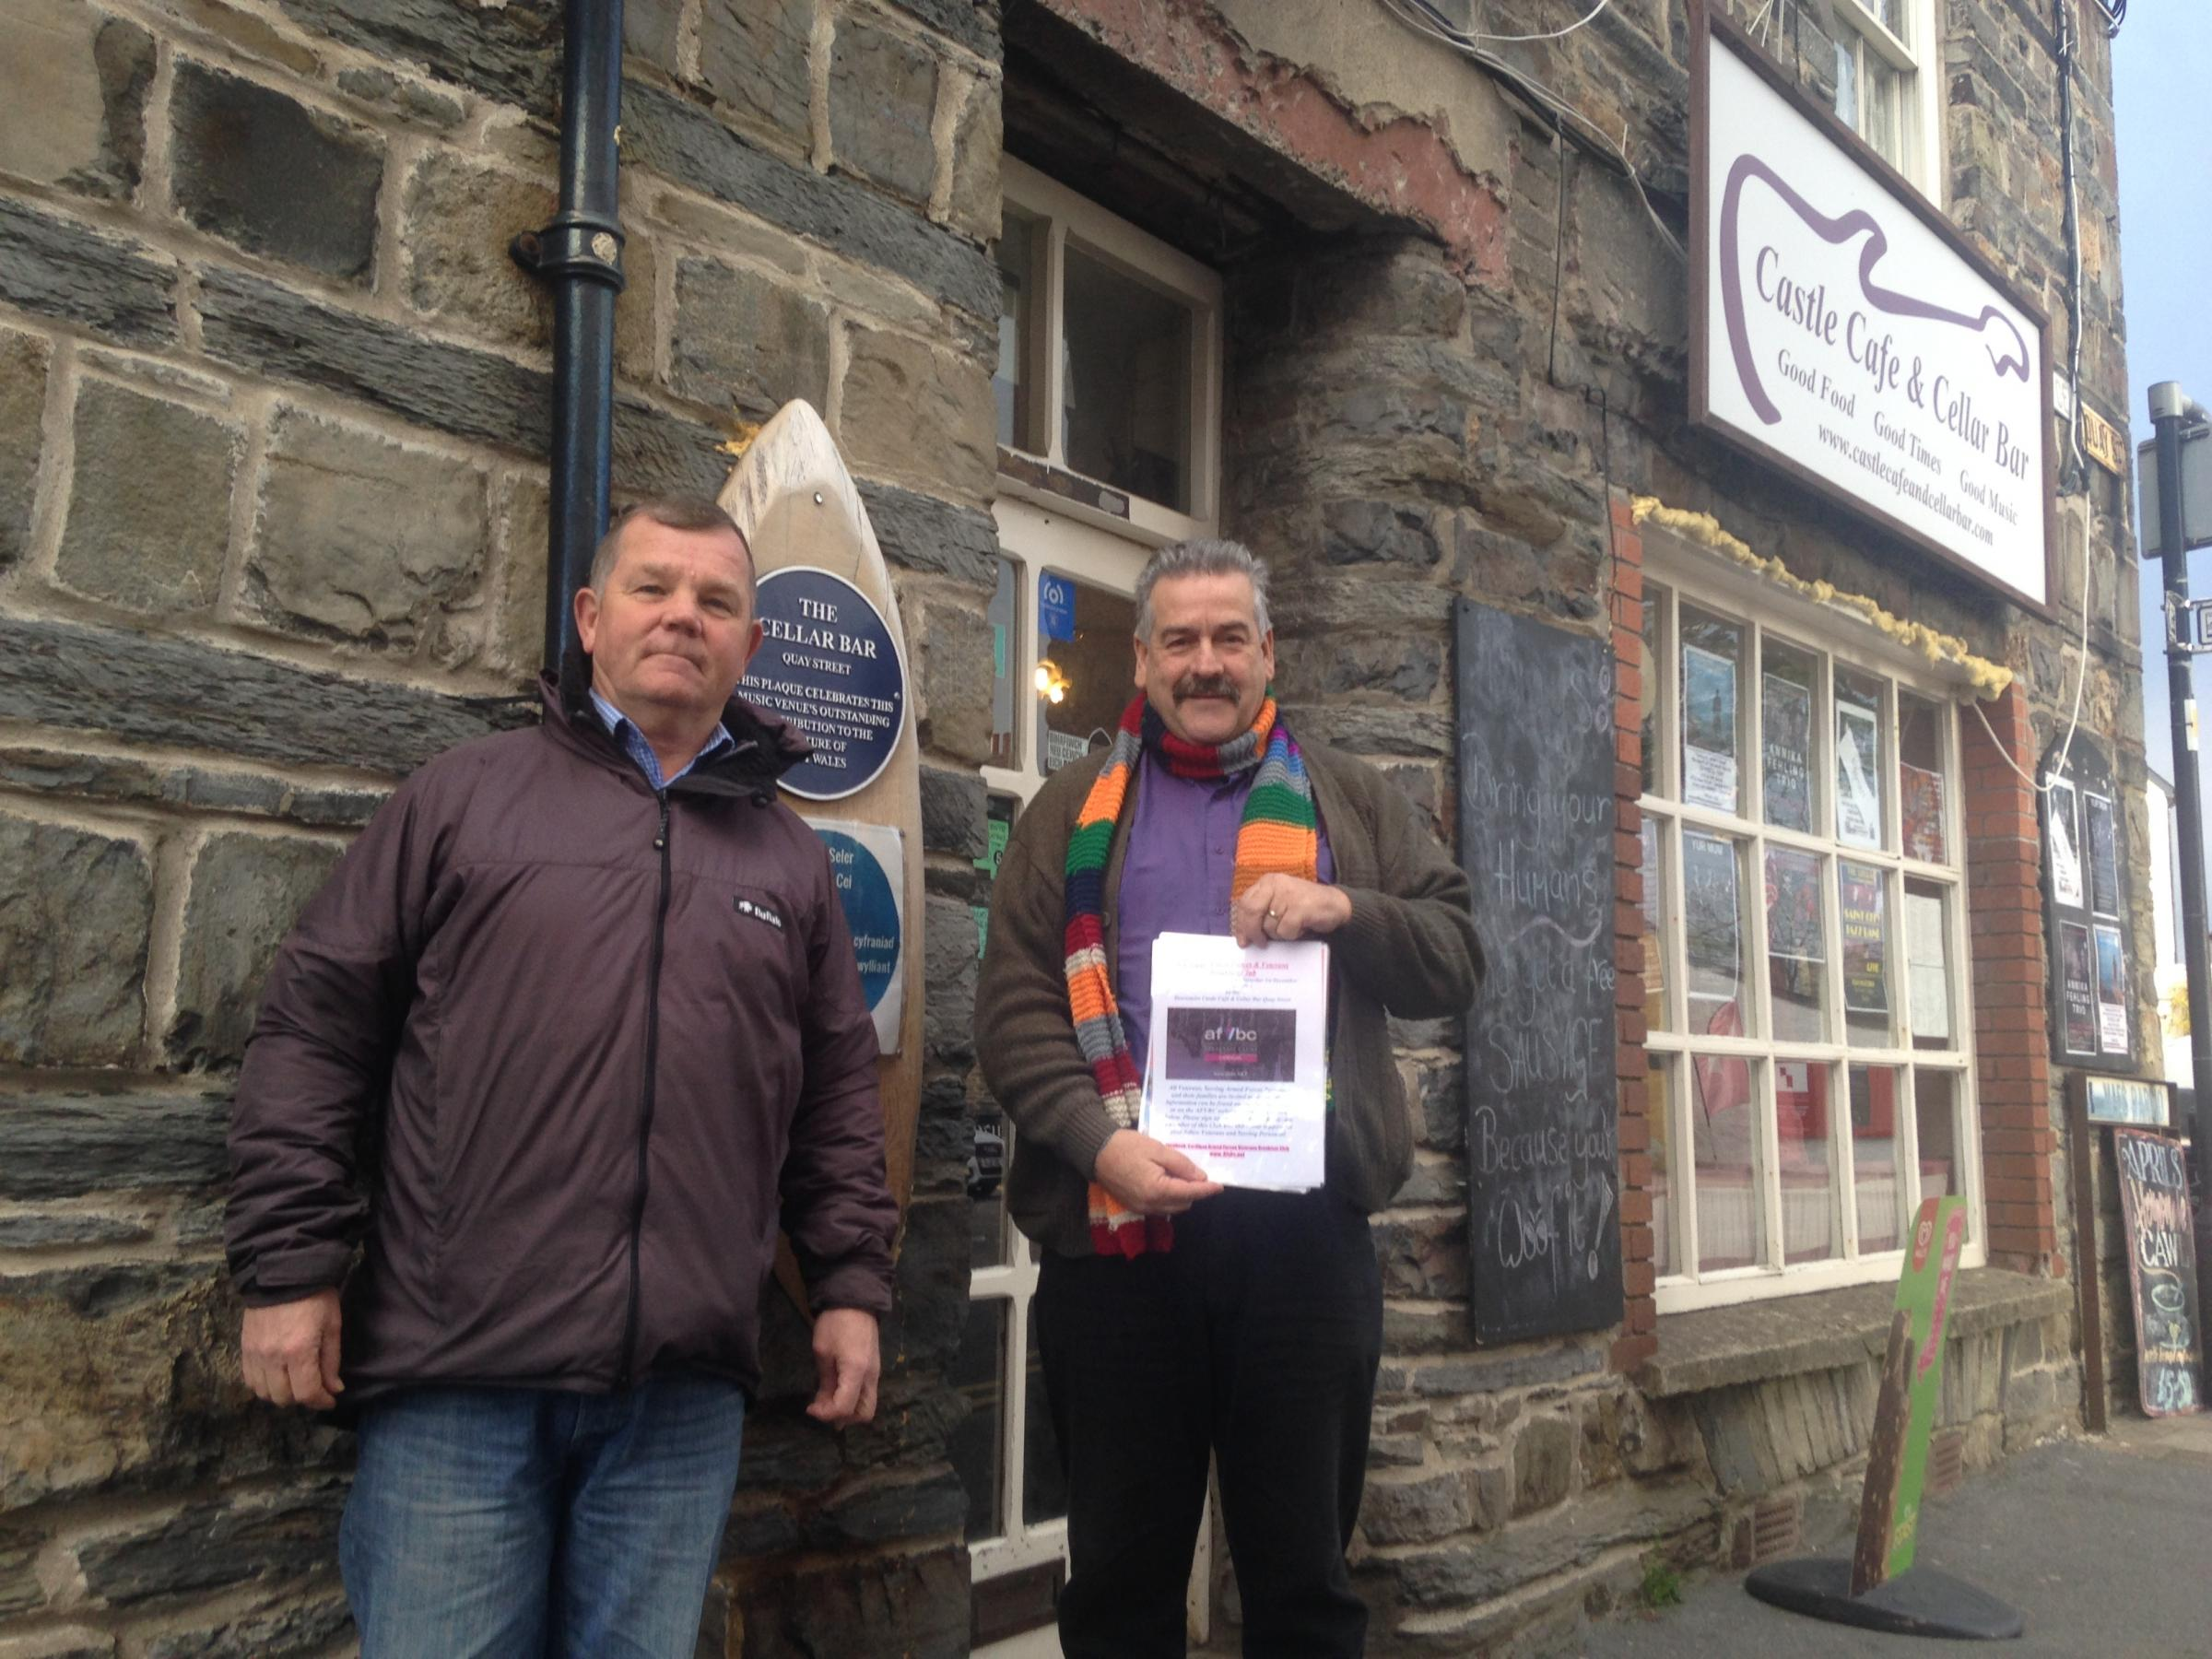 Tony Mason (left) and Steve Greenhalgh at Cardigan's Cellar Bar Cafe where the Cardigan Armed Forces and Veterans' Breakfast Club will be held